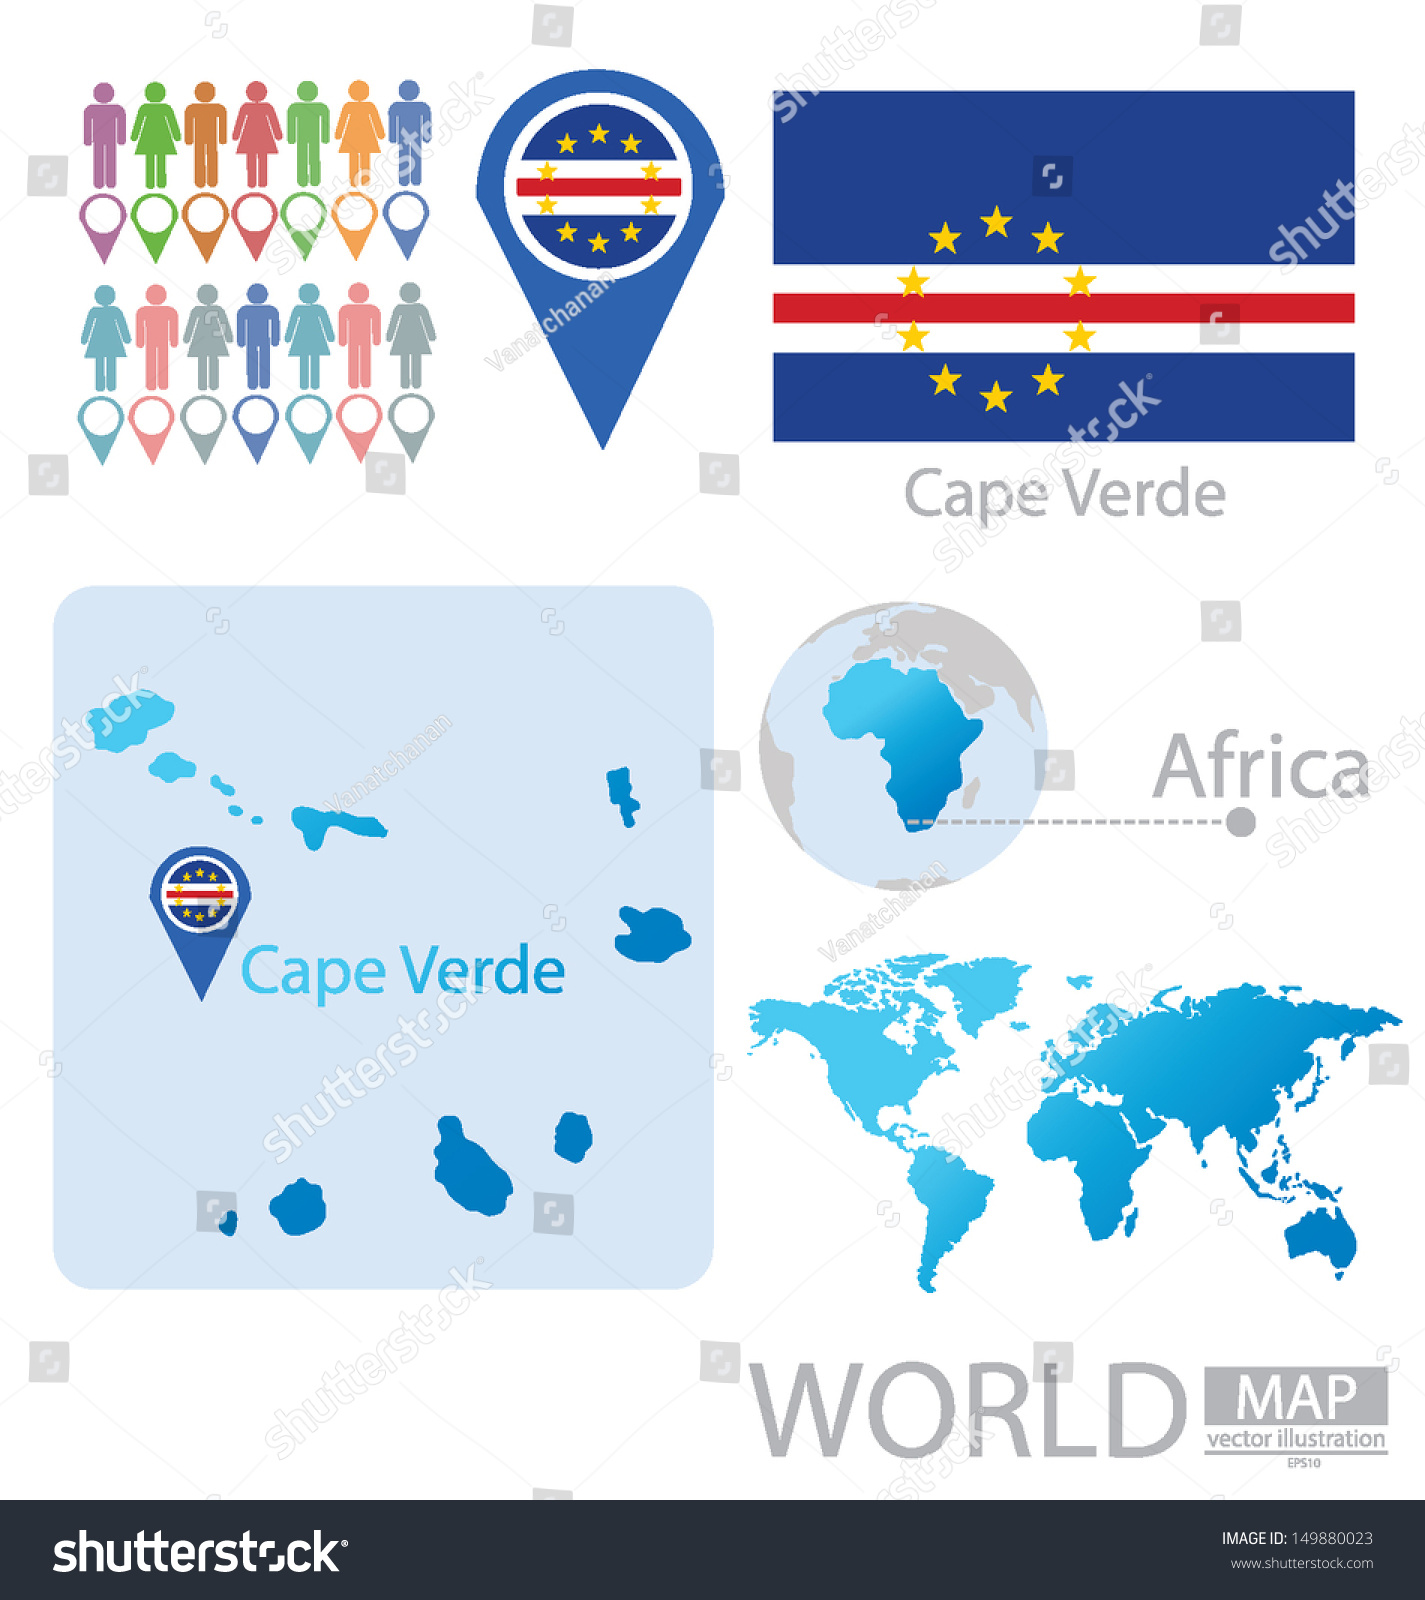 Cape Verde Flag World Map Vector Stock Vector Royalty Free